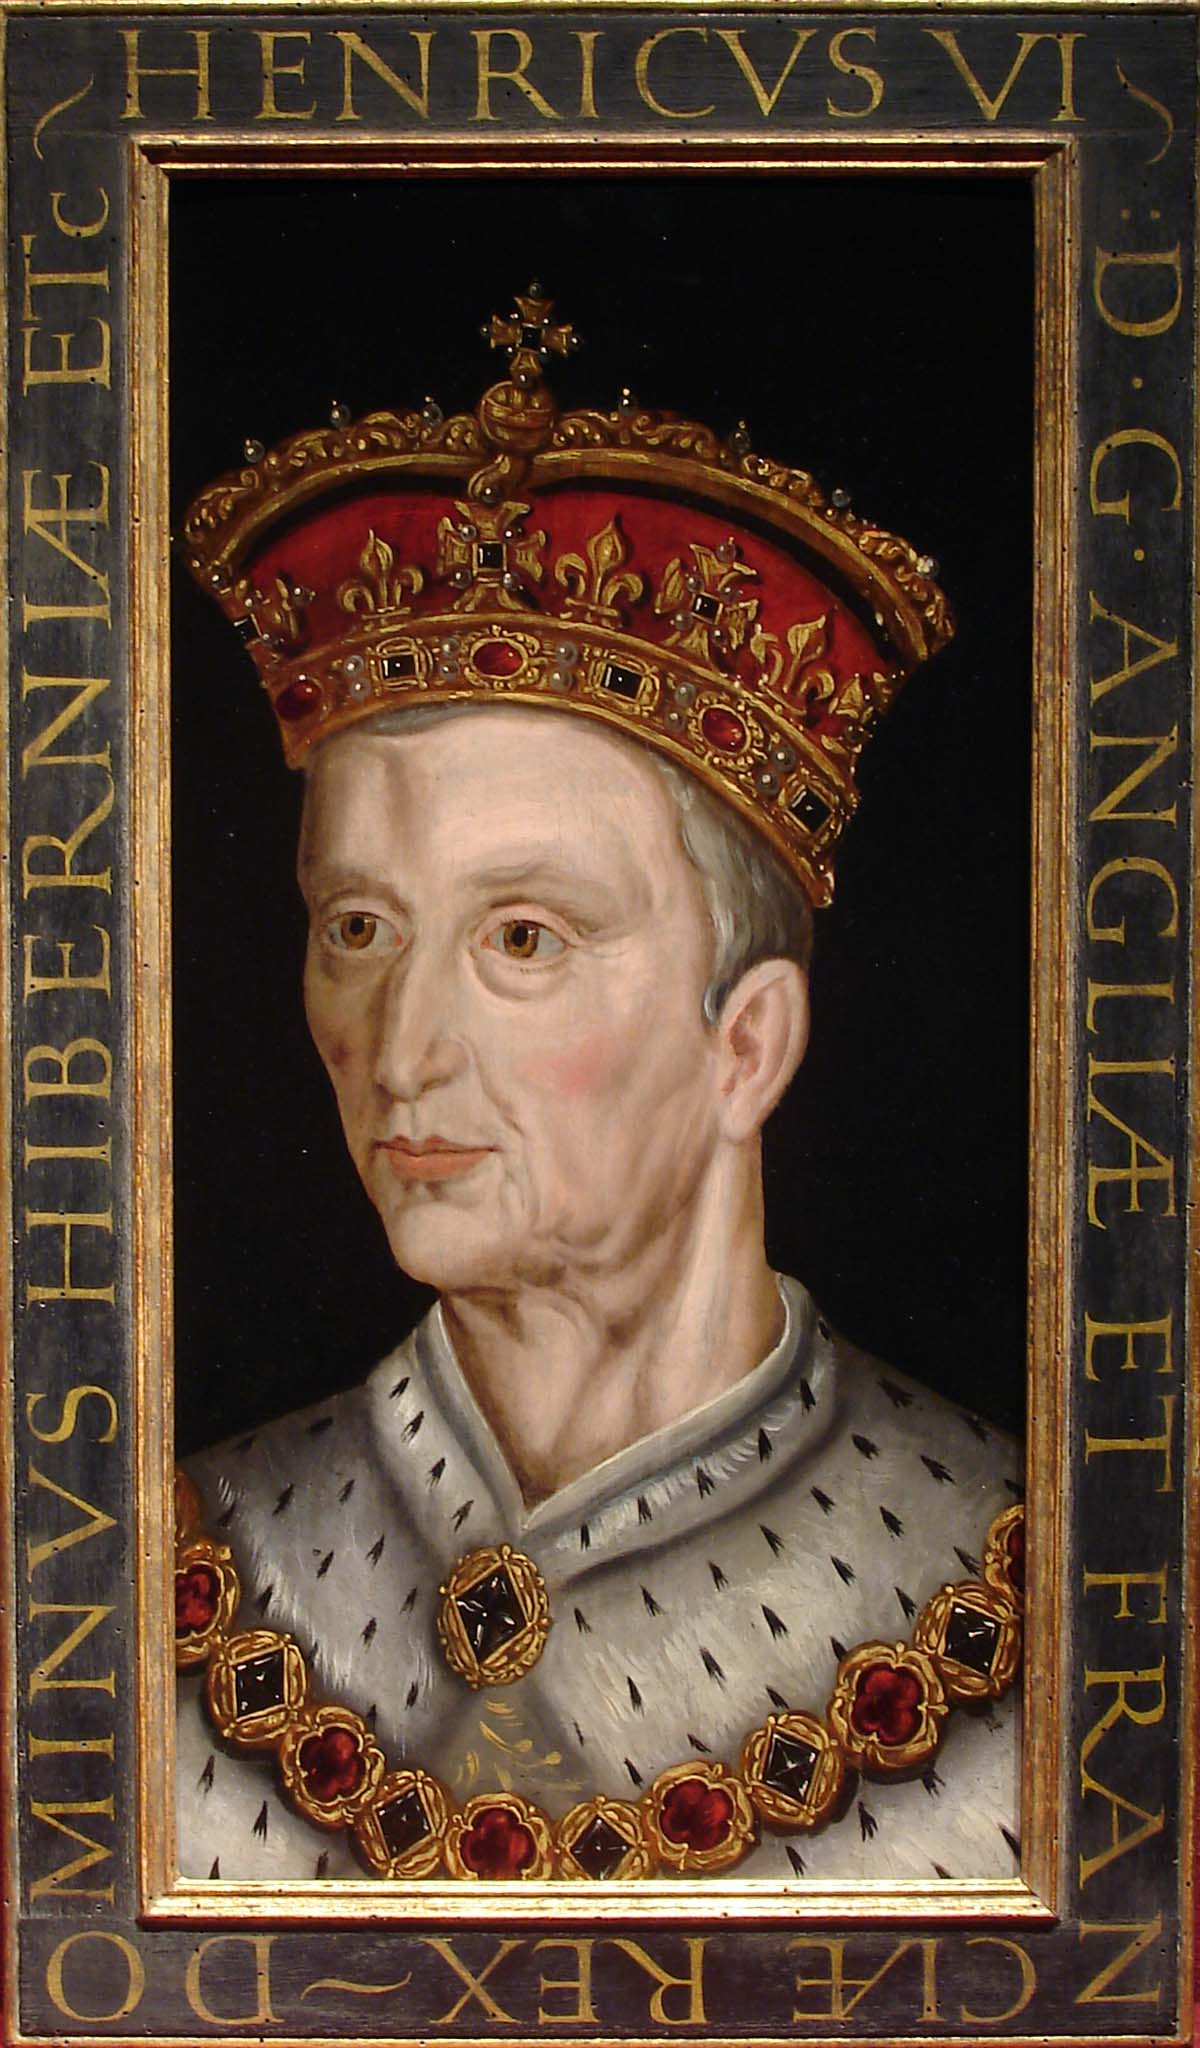 a portrait of King Henry VI with crown and ermine collar and gold chain